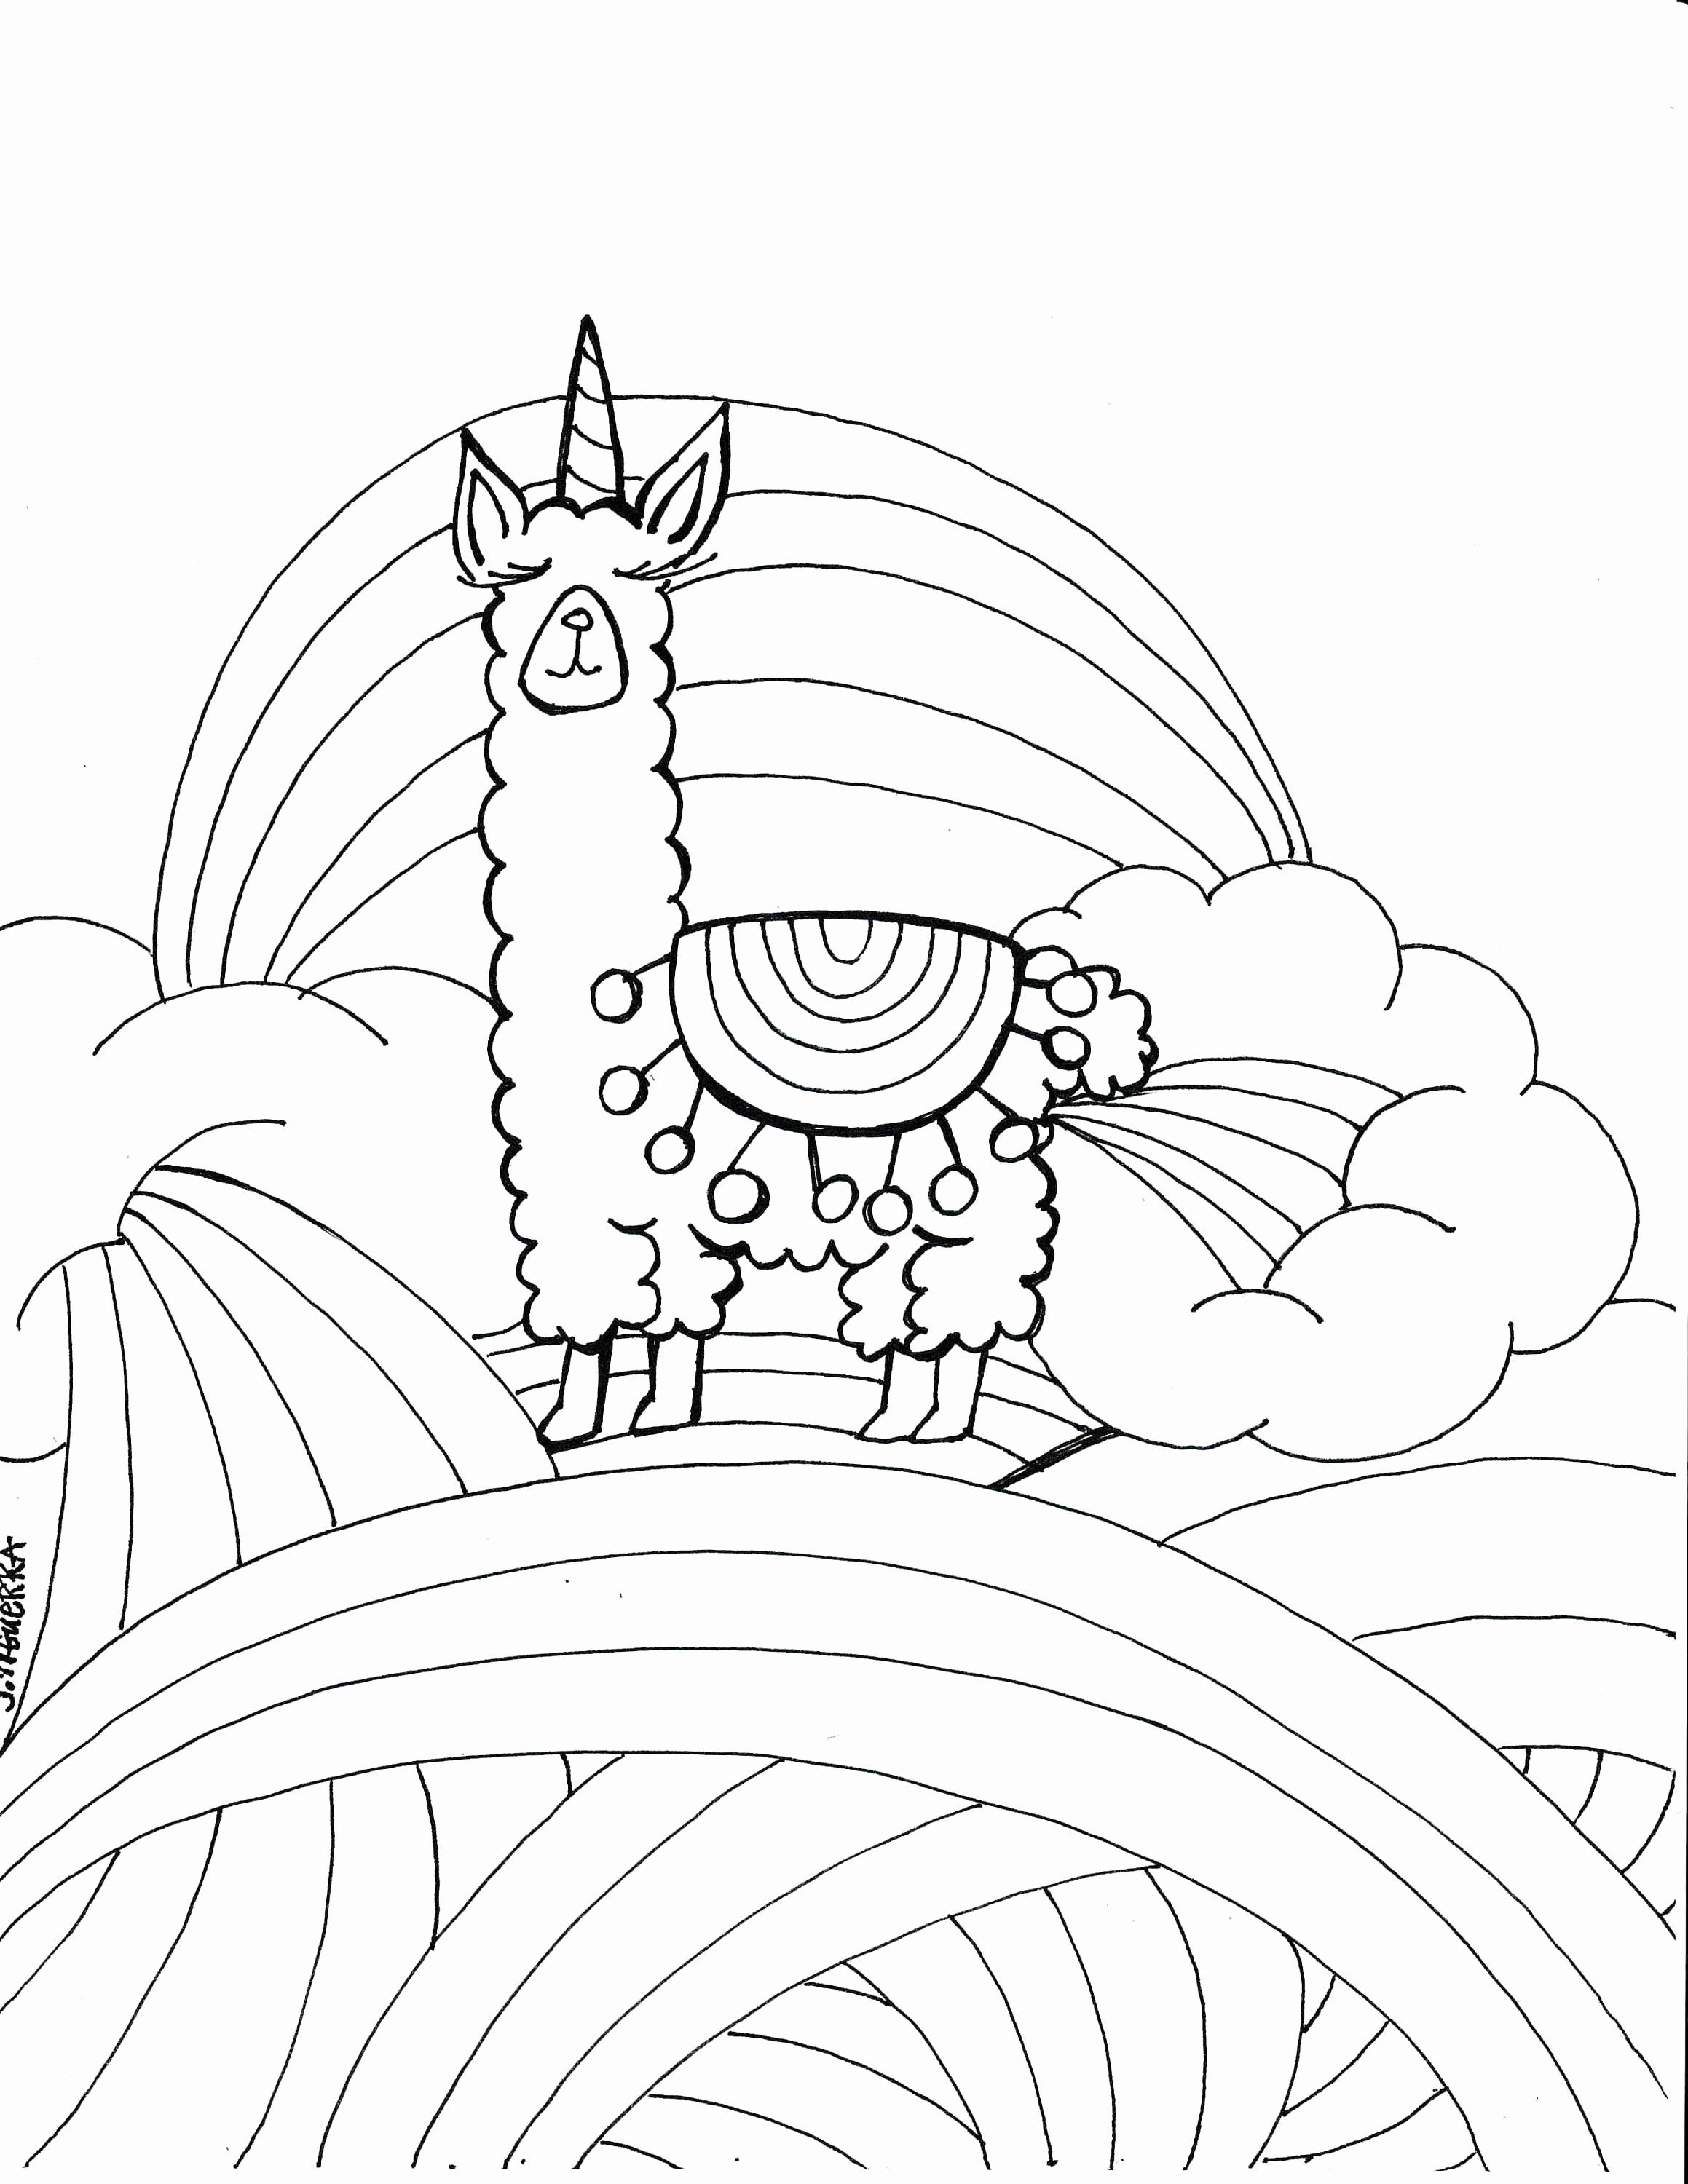 Cartoon Coloring Pages Pdf Elegant Llama Coloring Pages Stitch Coloring Pages Cartoon Coloring Pages Animal Coloring Pages